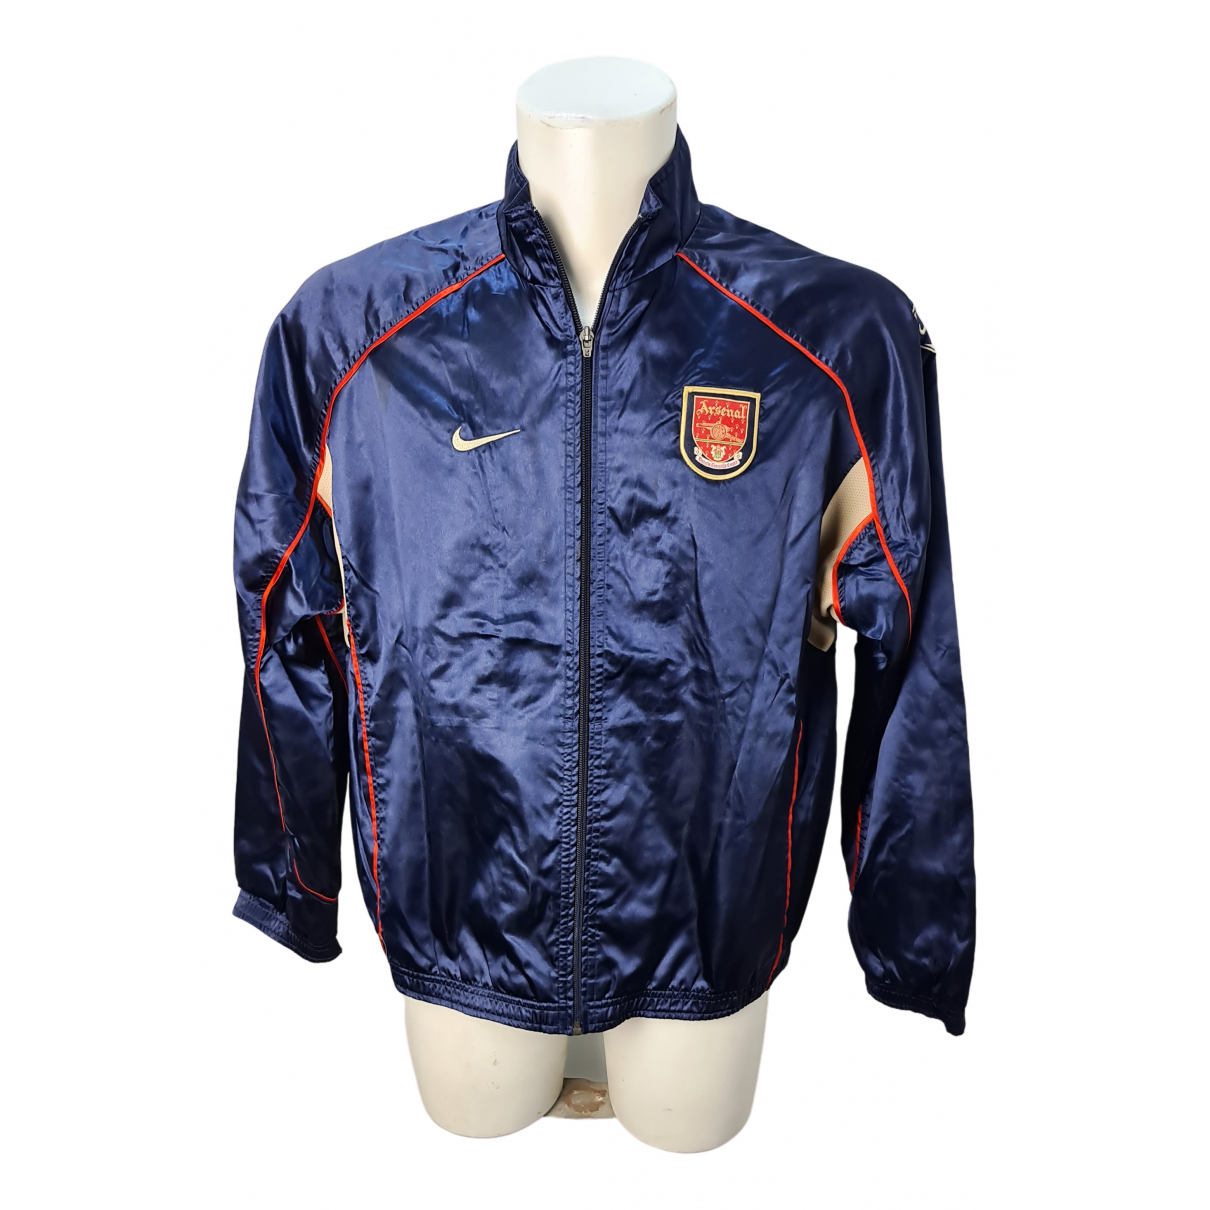 Nike \N Blue jacket  for Men M International